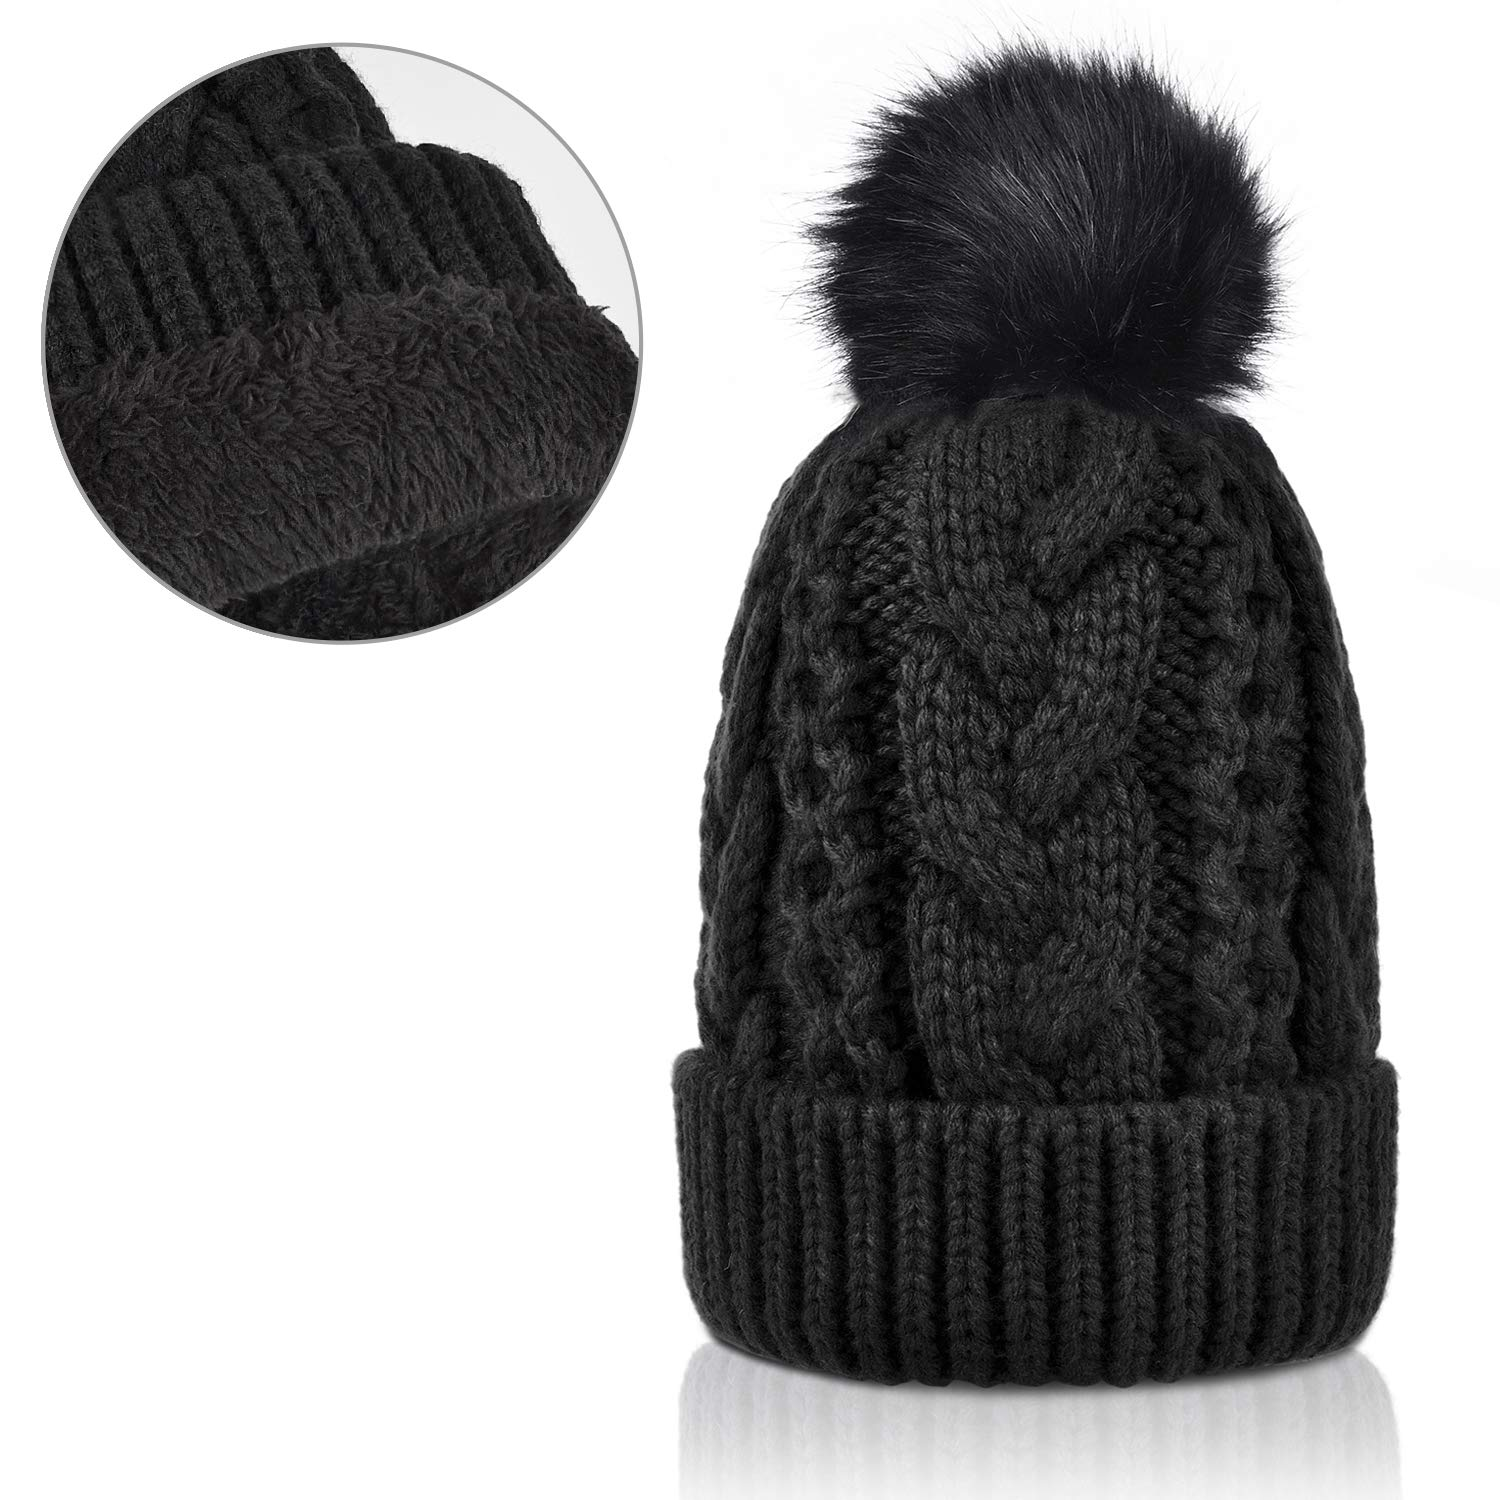 66386e7293c Winter Thick Cable Knit Faux Fuzzy Fur Pom Pom Sherpa Lined Skull Ski Cap  Cuff Beanie Black at Amazon Women s Clothing store